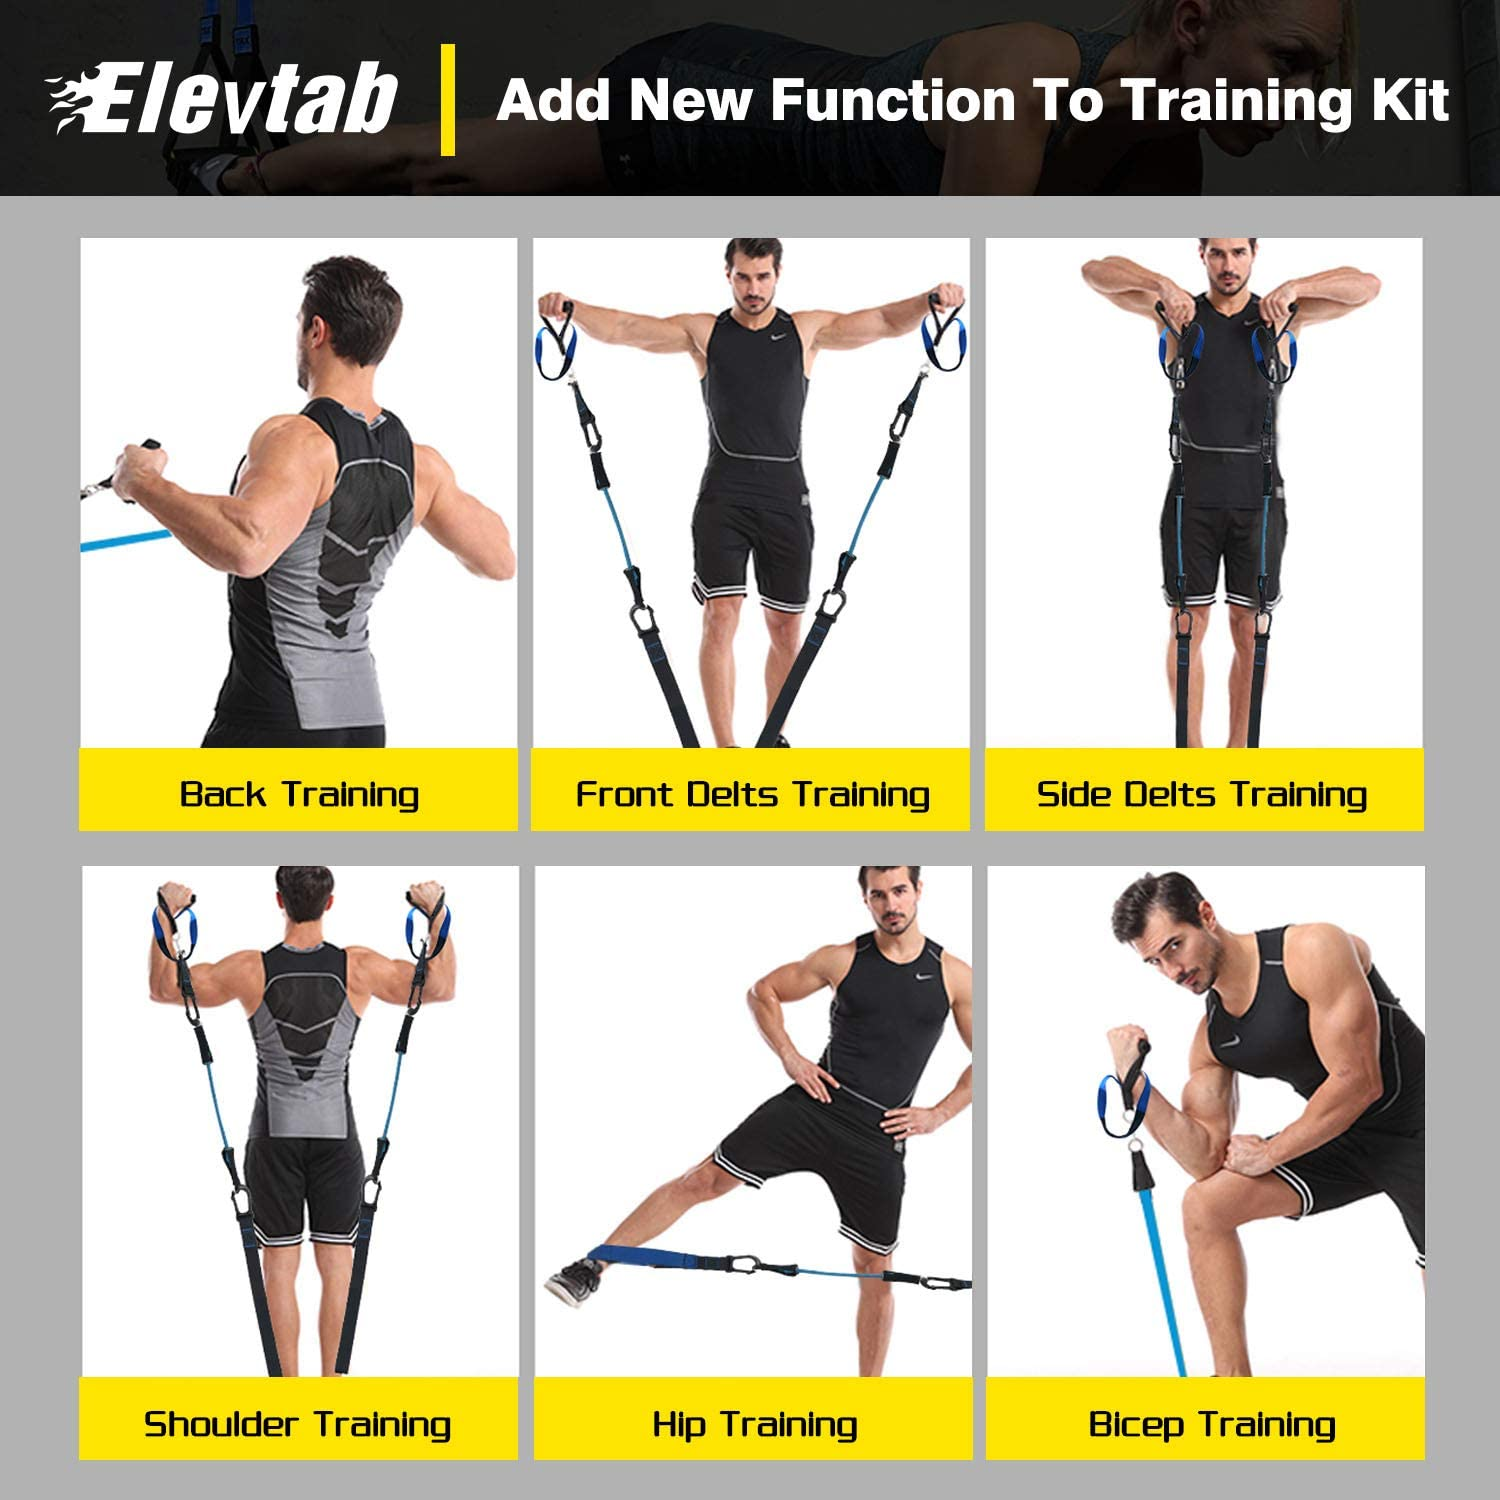 Complete Home Gym Fitness Trainer kit for Full-Body Workout NEA Bodyweight Resistance Training Straps Fitness Guide and 4 Bands Included Door Anchor 16 Week Program Extension Strap